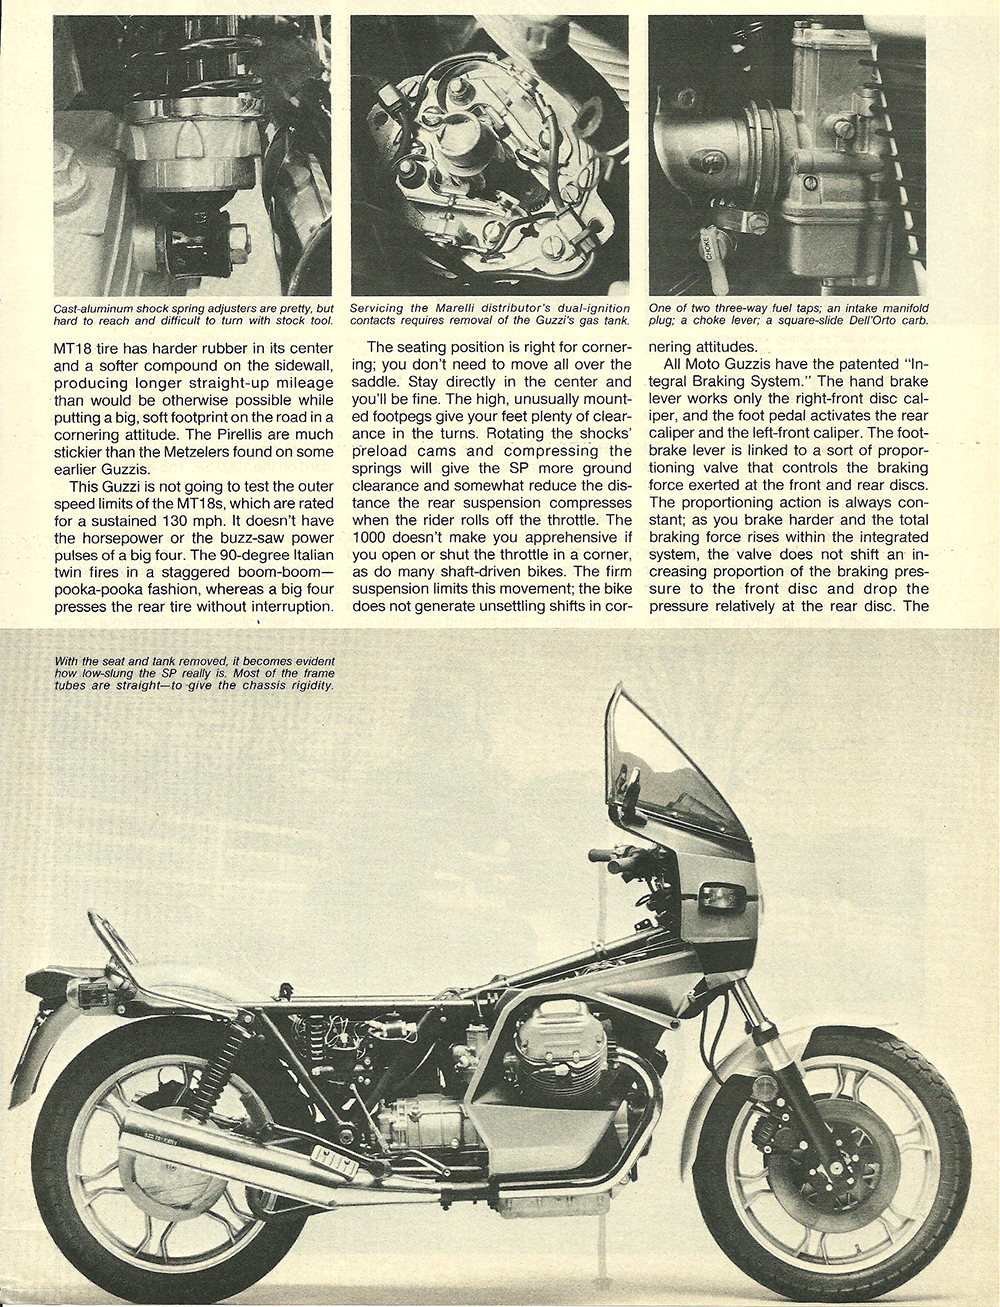 1979 Moto Guzzi 1000 SP road test 06.jpg